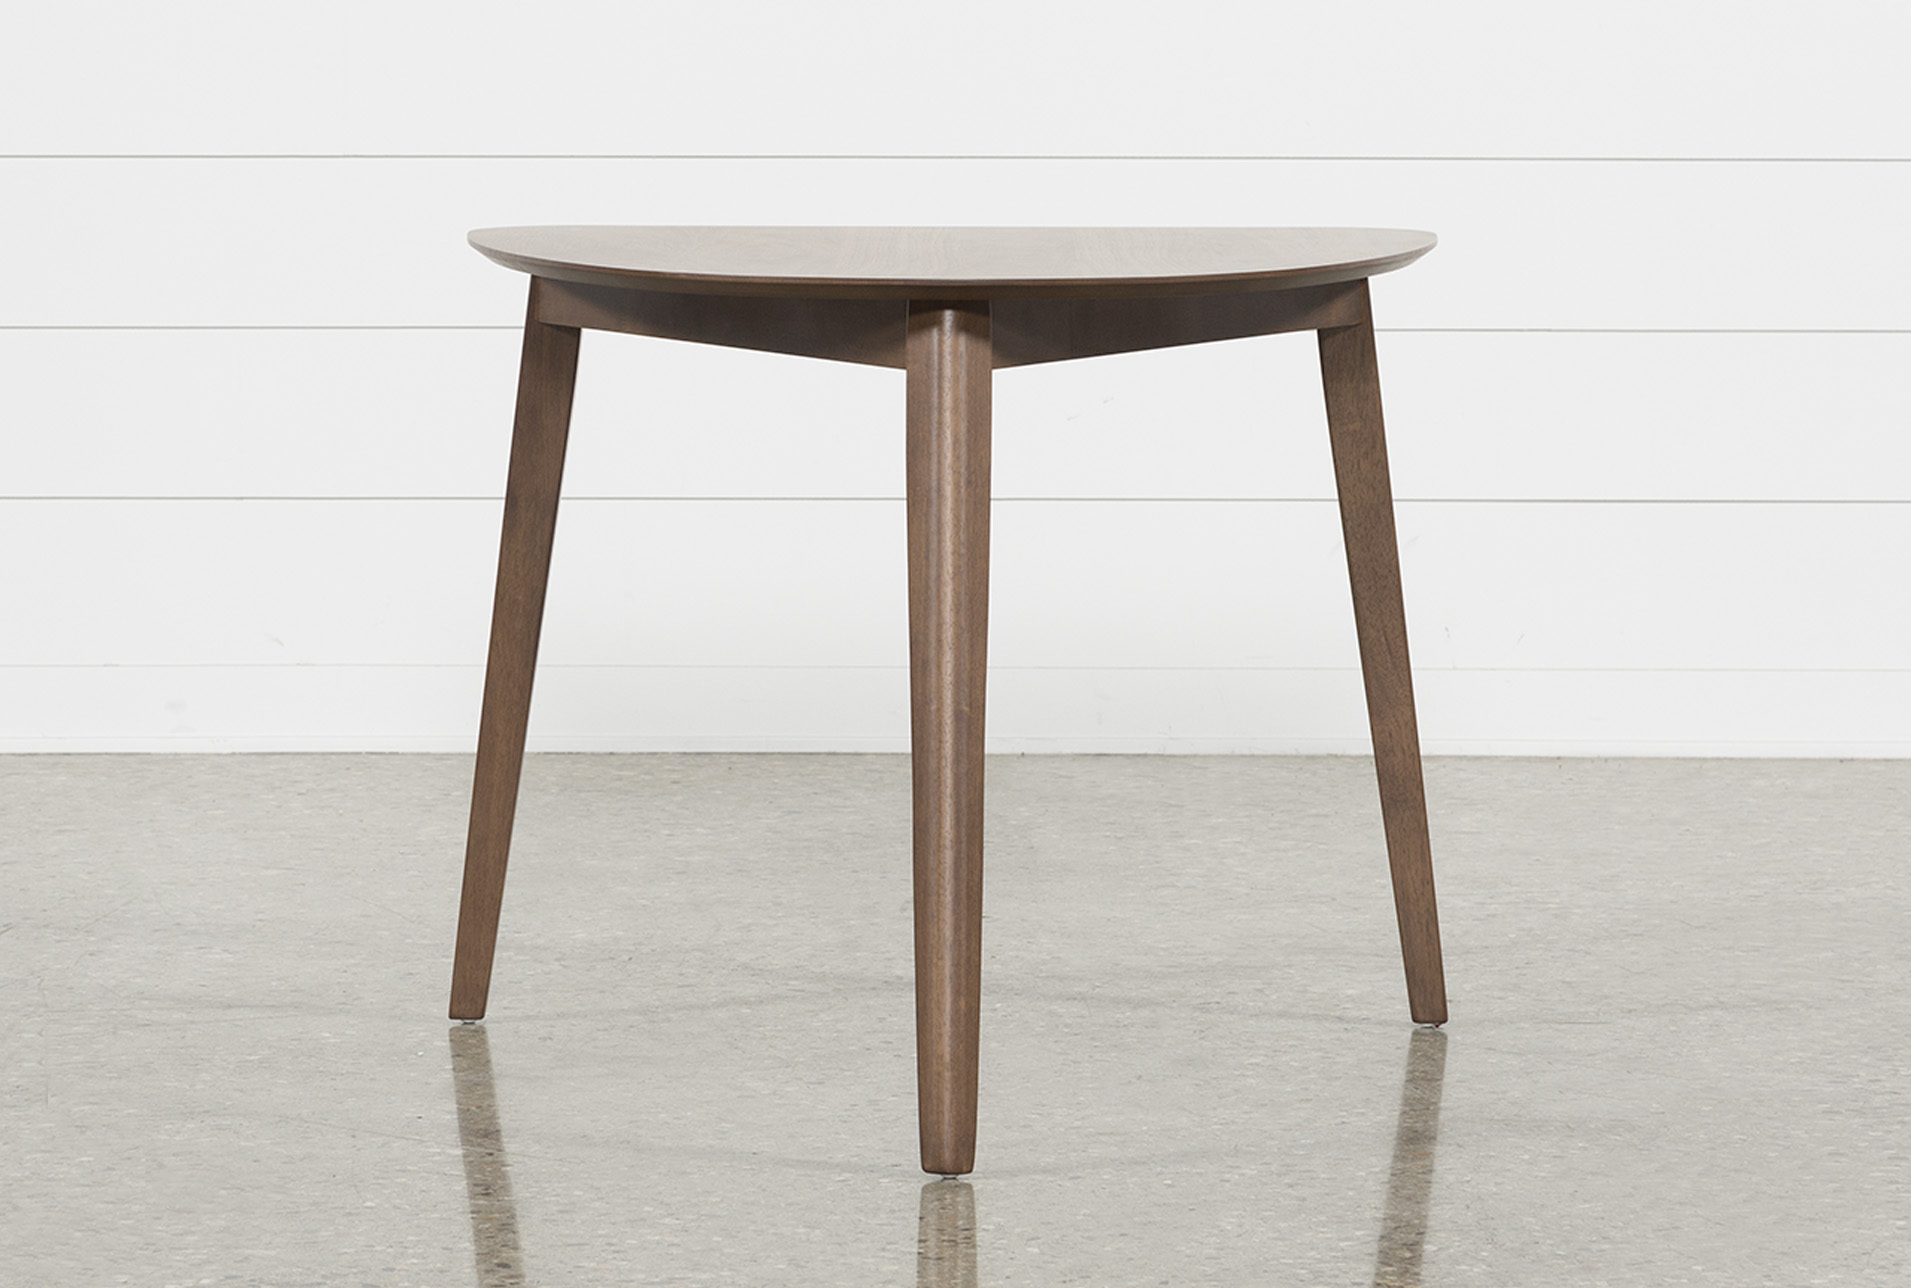 Genial Carly Triangle Table (Qty: 1) Has Been Successfully Added To Your Cart.